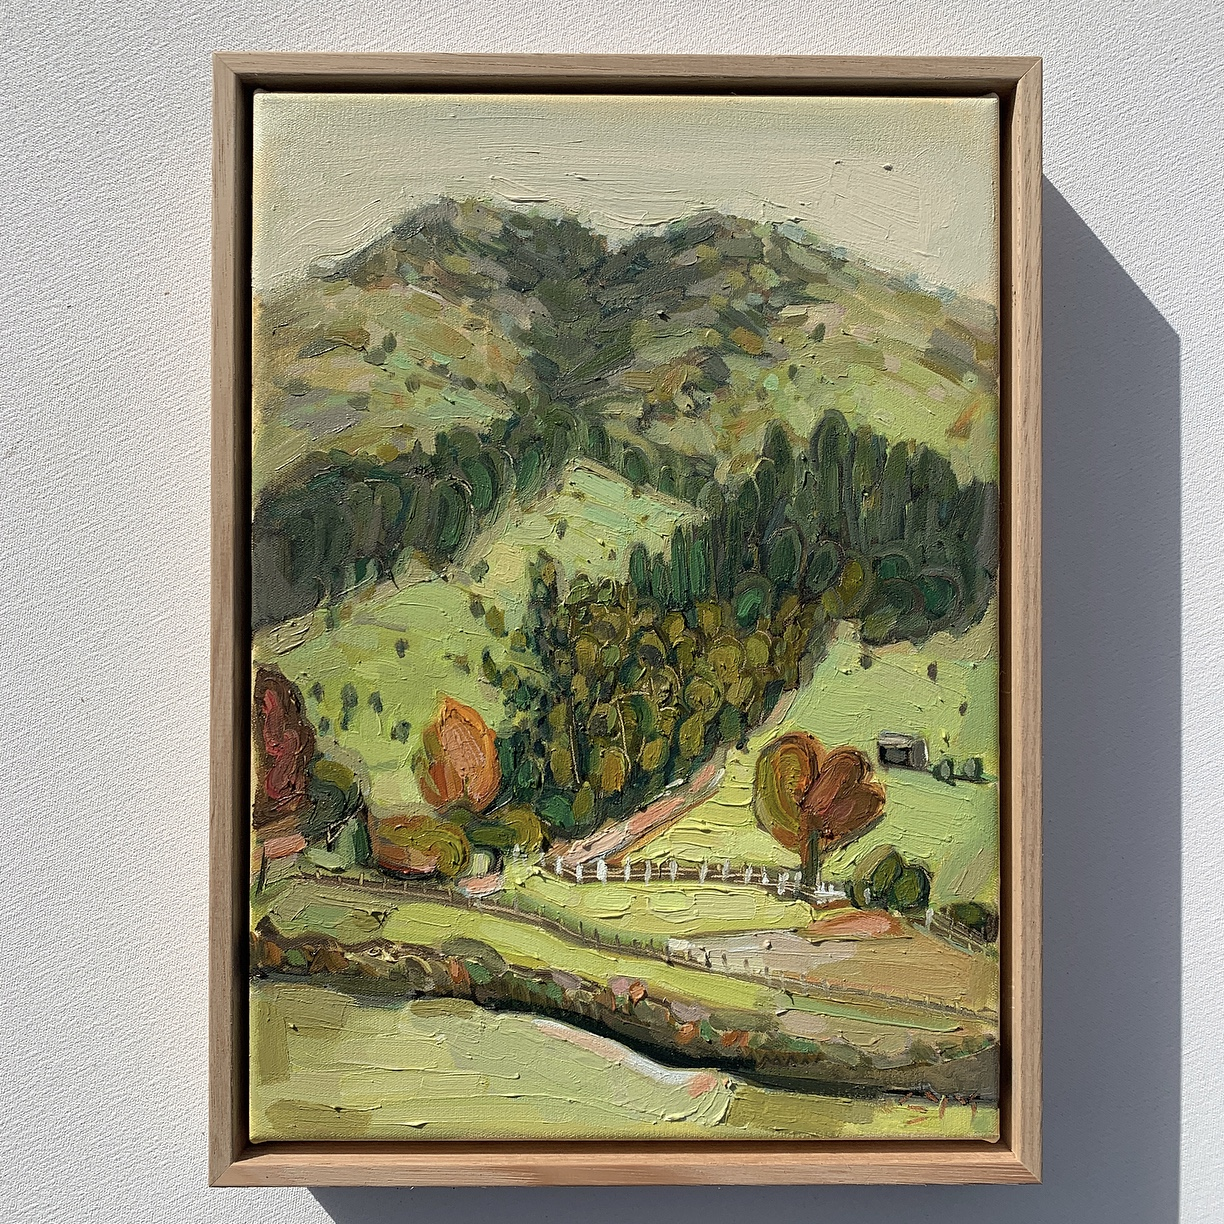 sam michelle 'hills & trees' 38x28cm 201